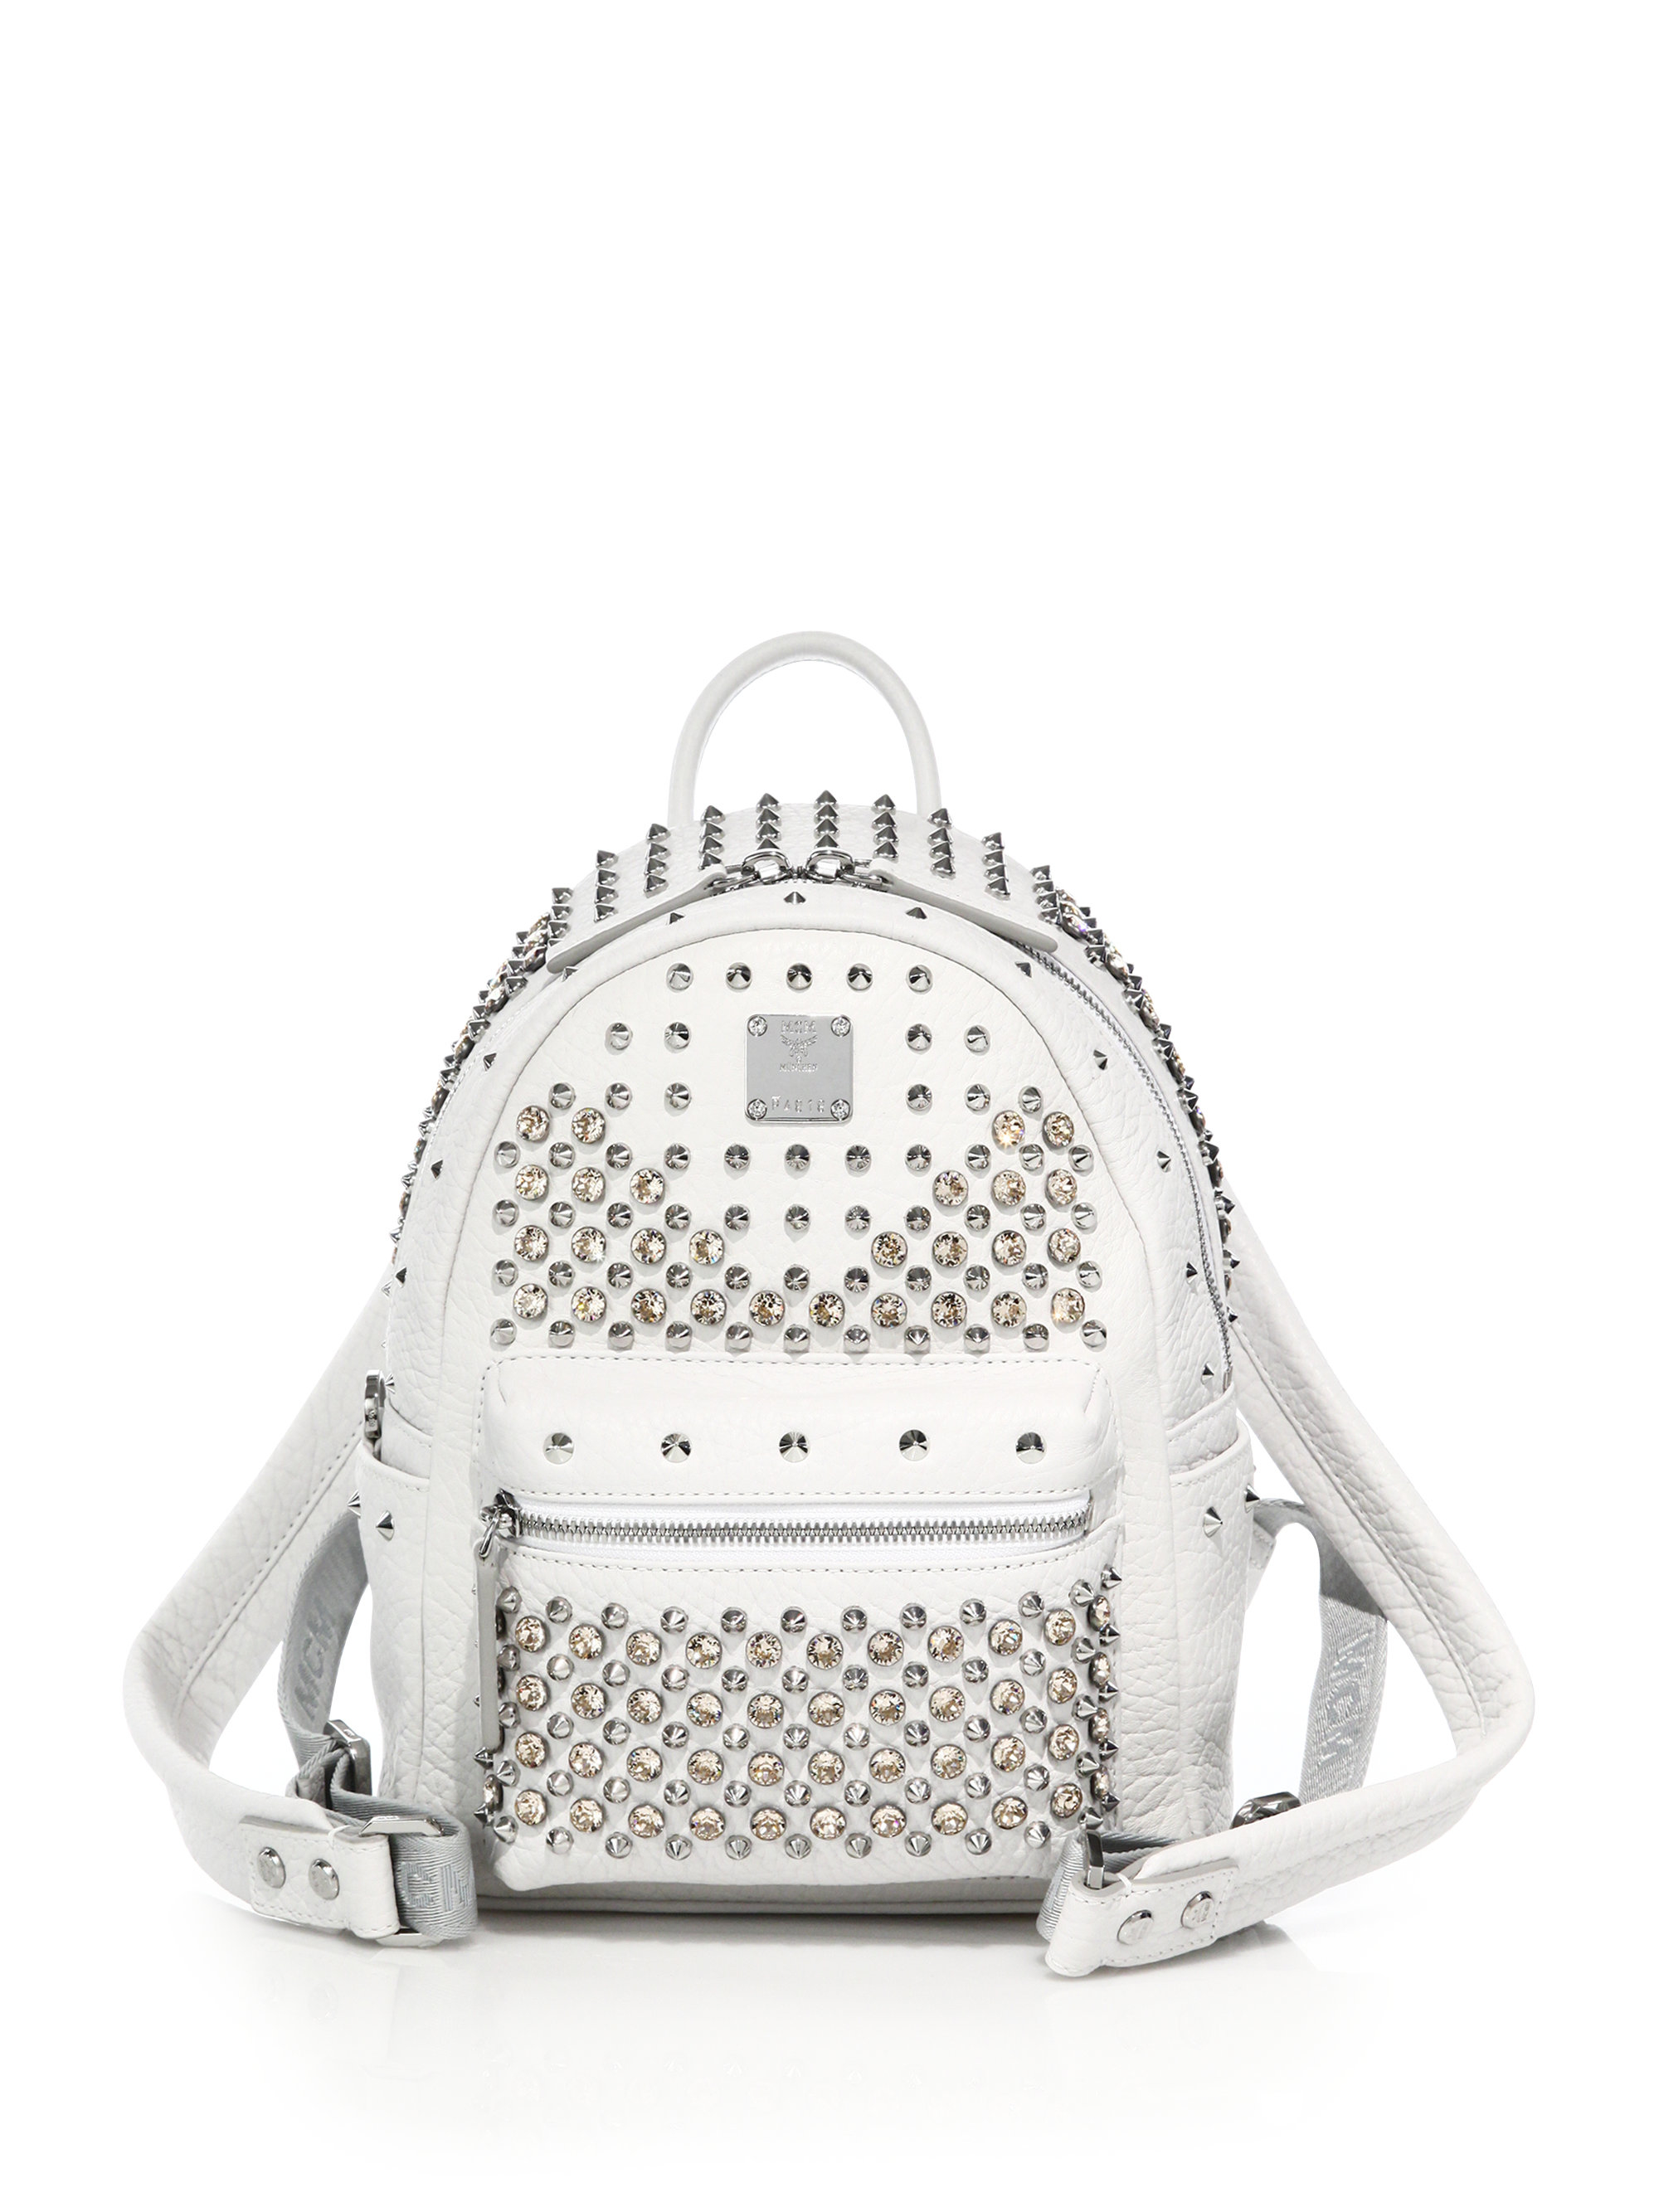 Lyst - MCM Stark Special Mini Studded Leather Backpack in White 5699867dd3c7b